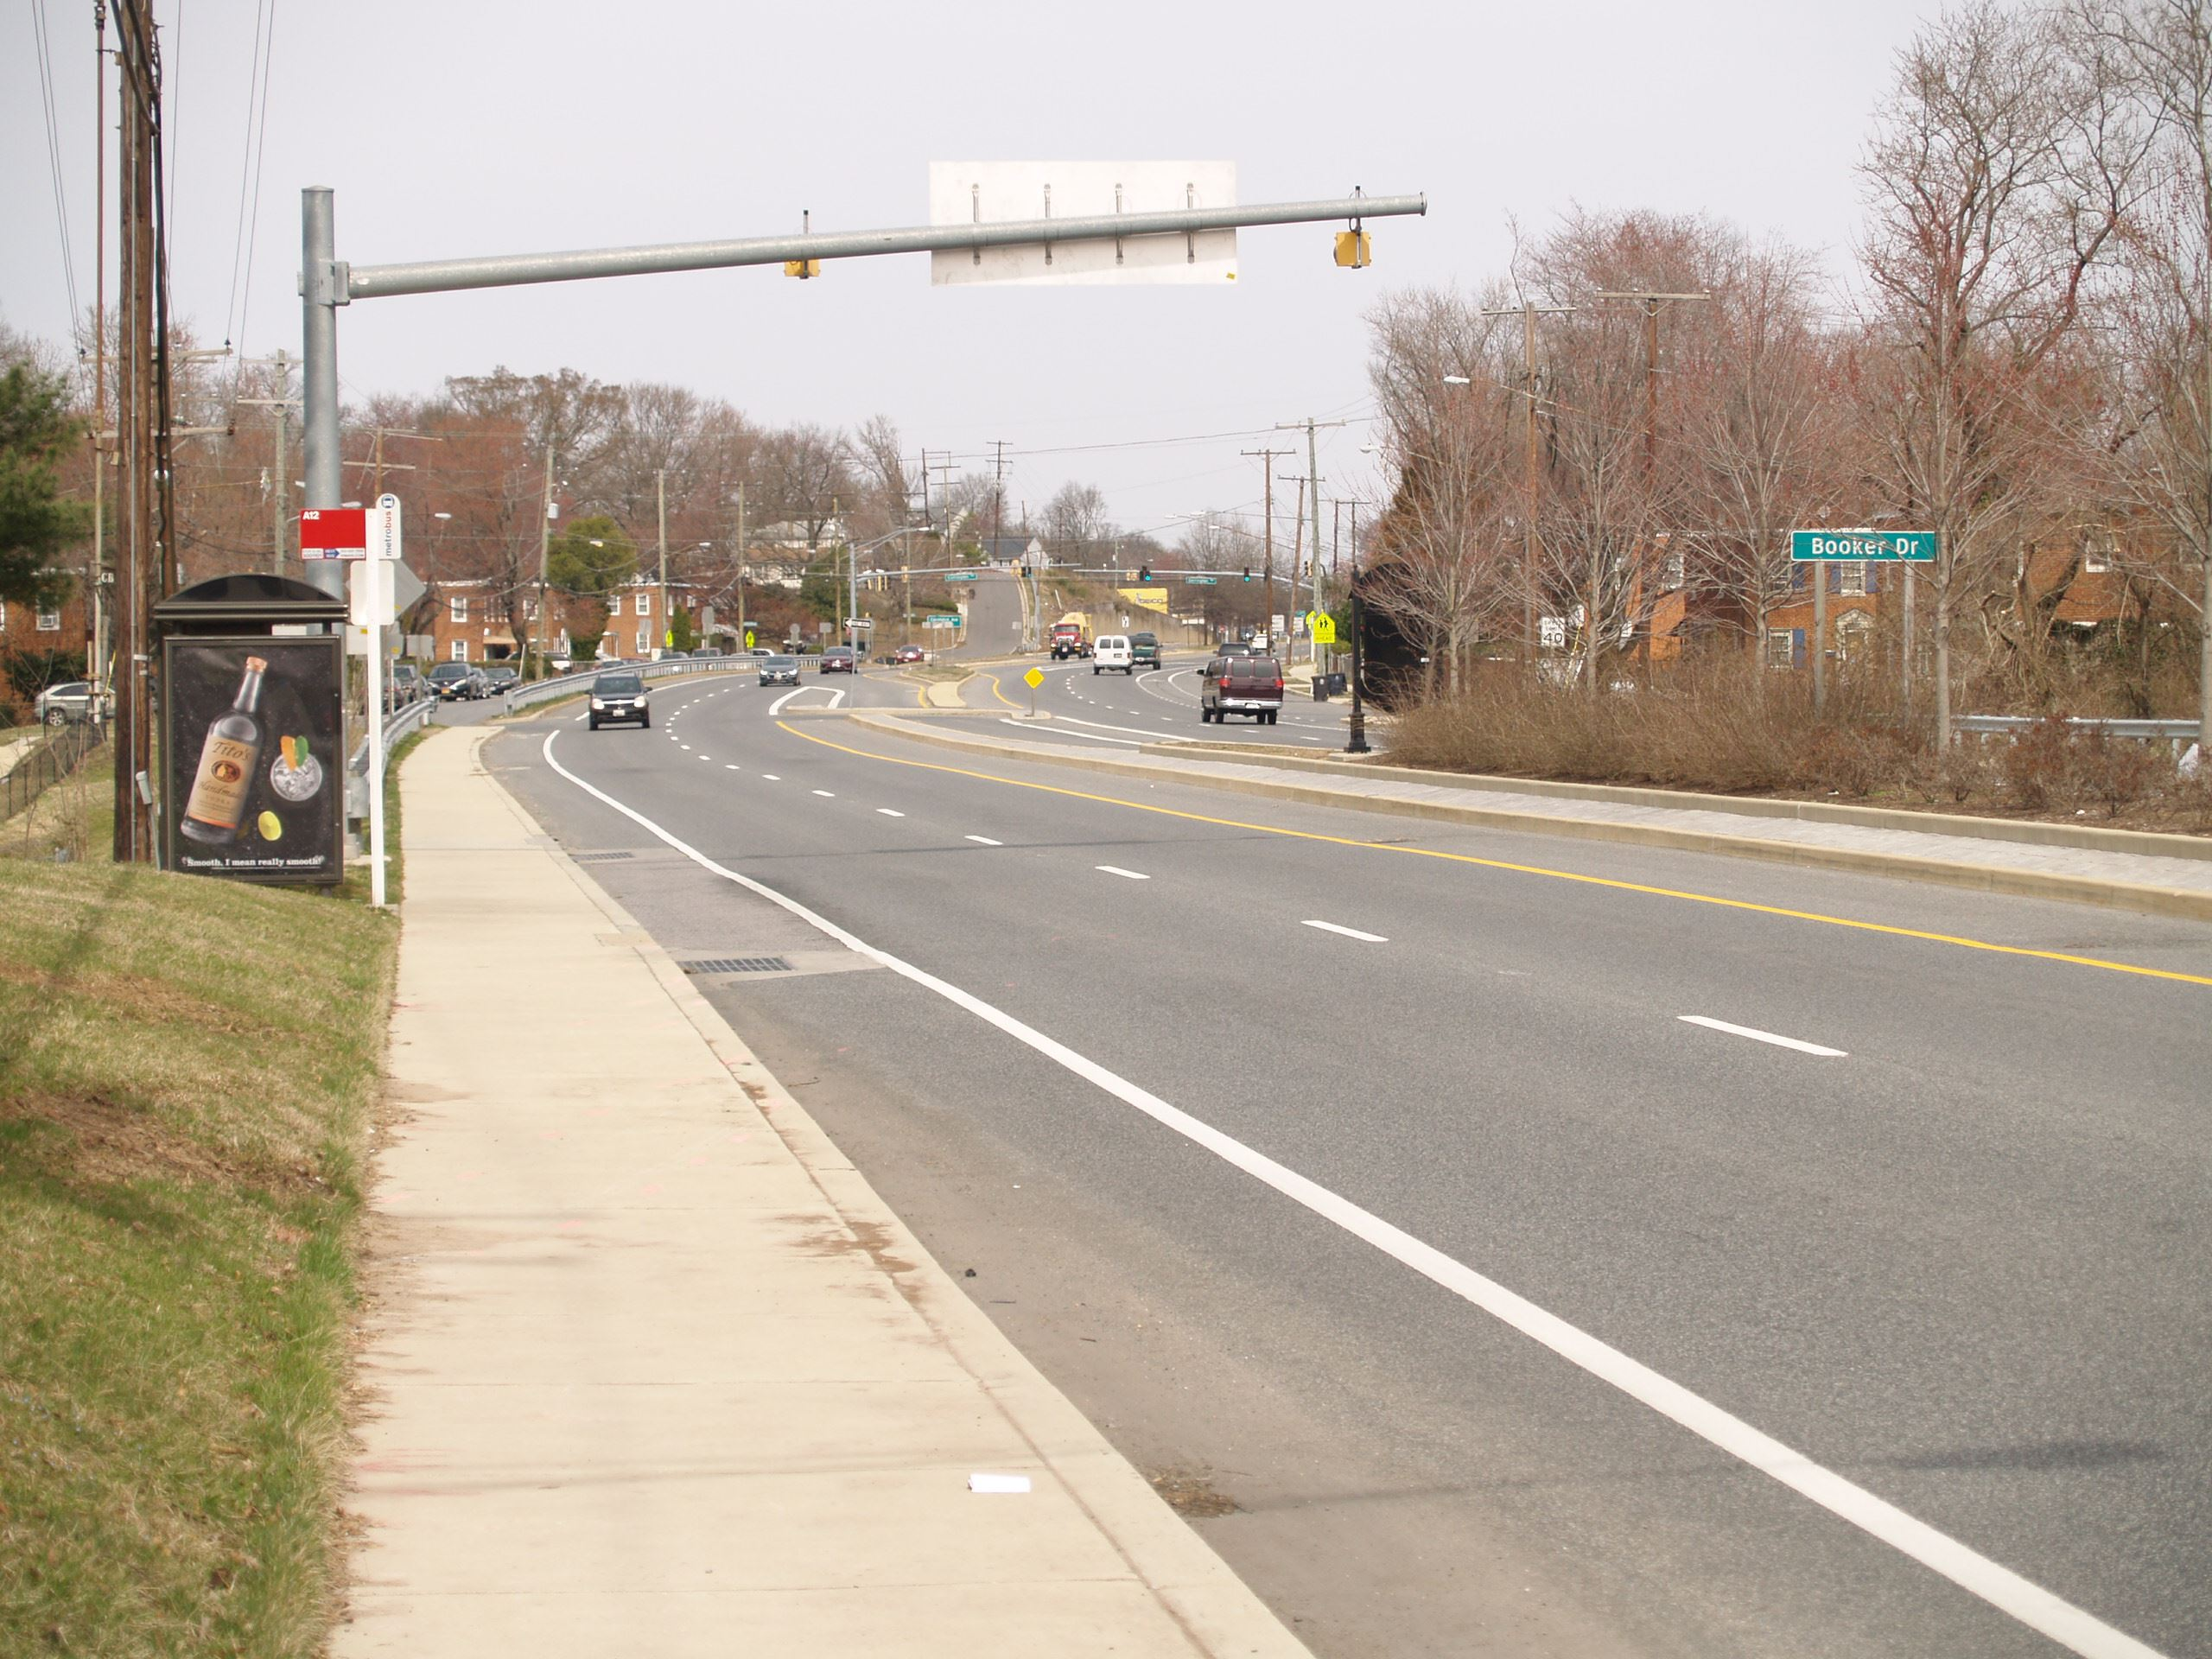 Westbound MD 704 at 901 MLK Jr. Hwy. - Looking east towards Booker Dr.